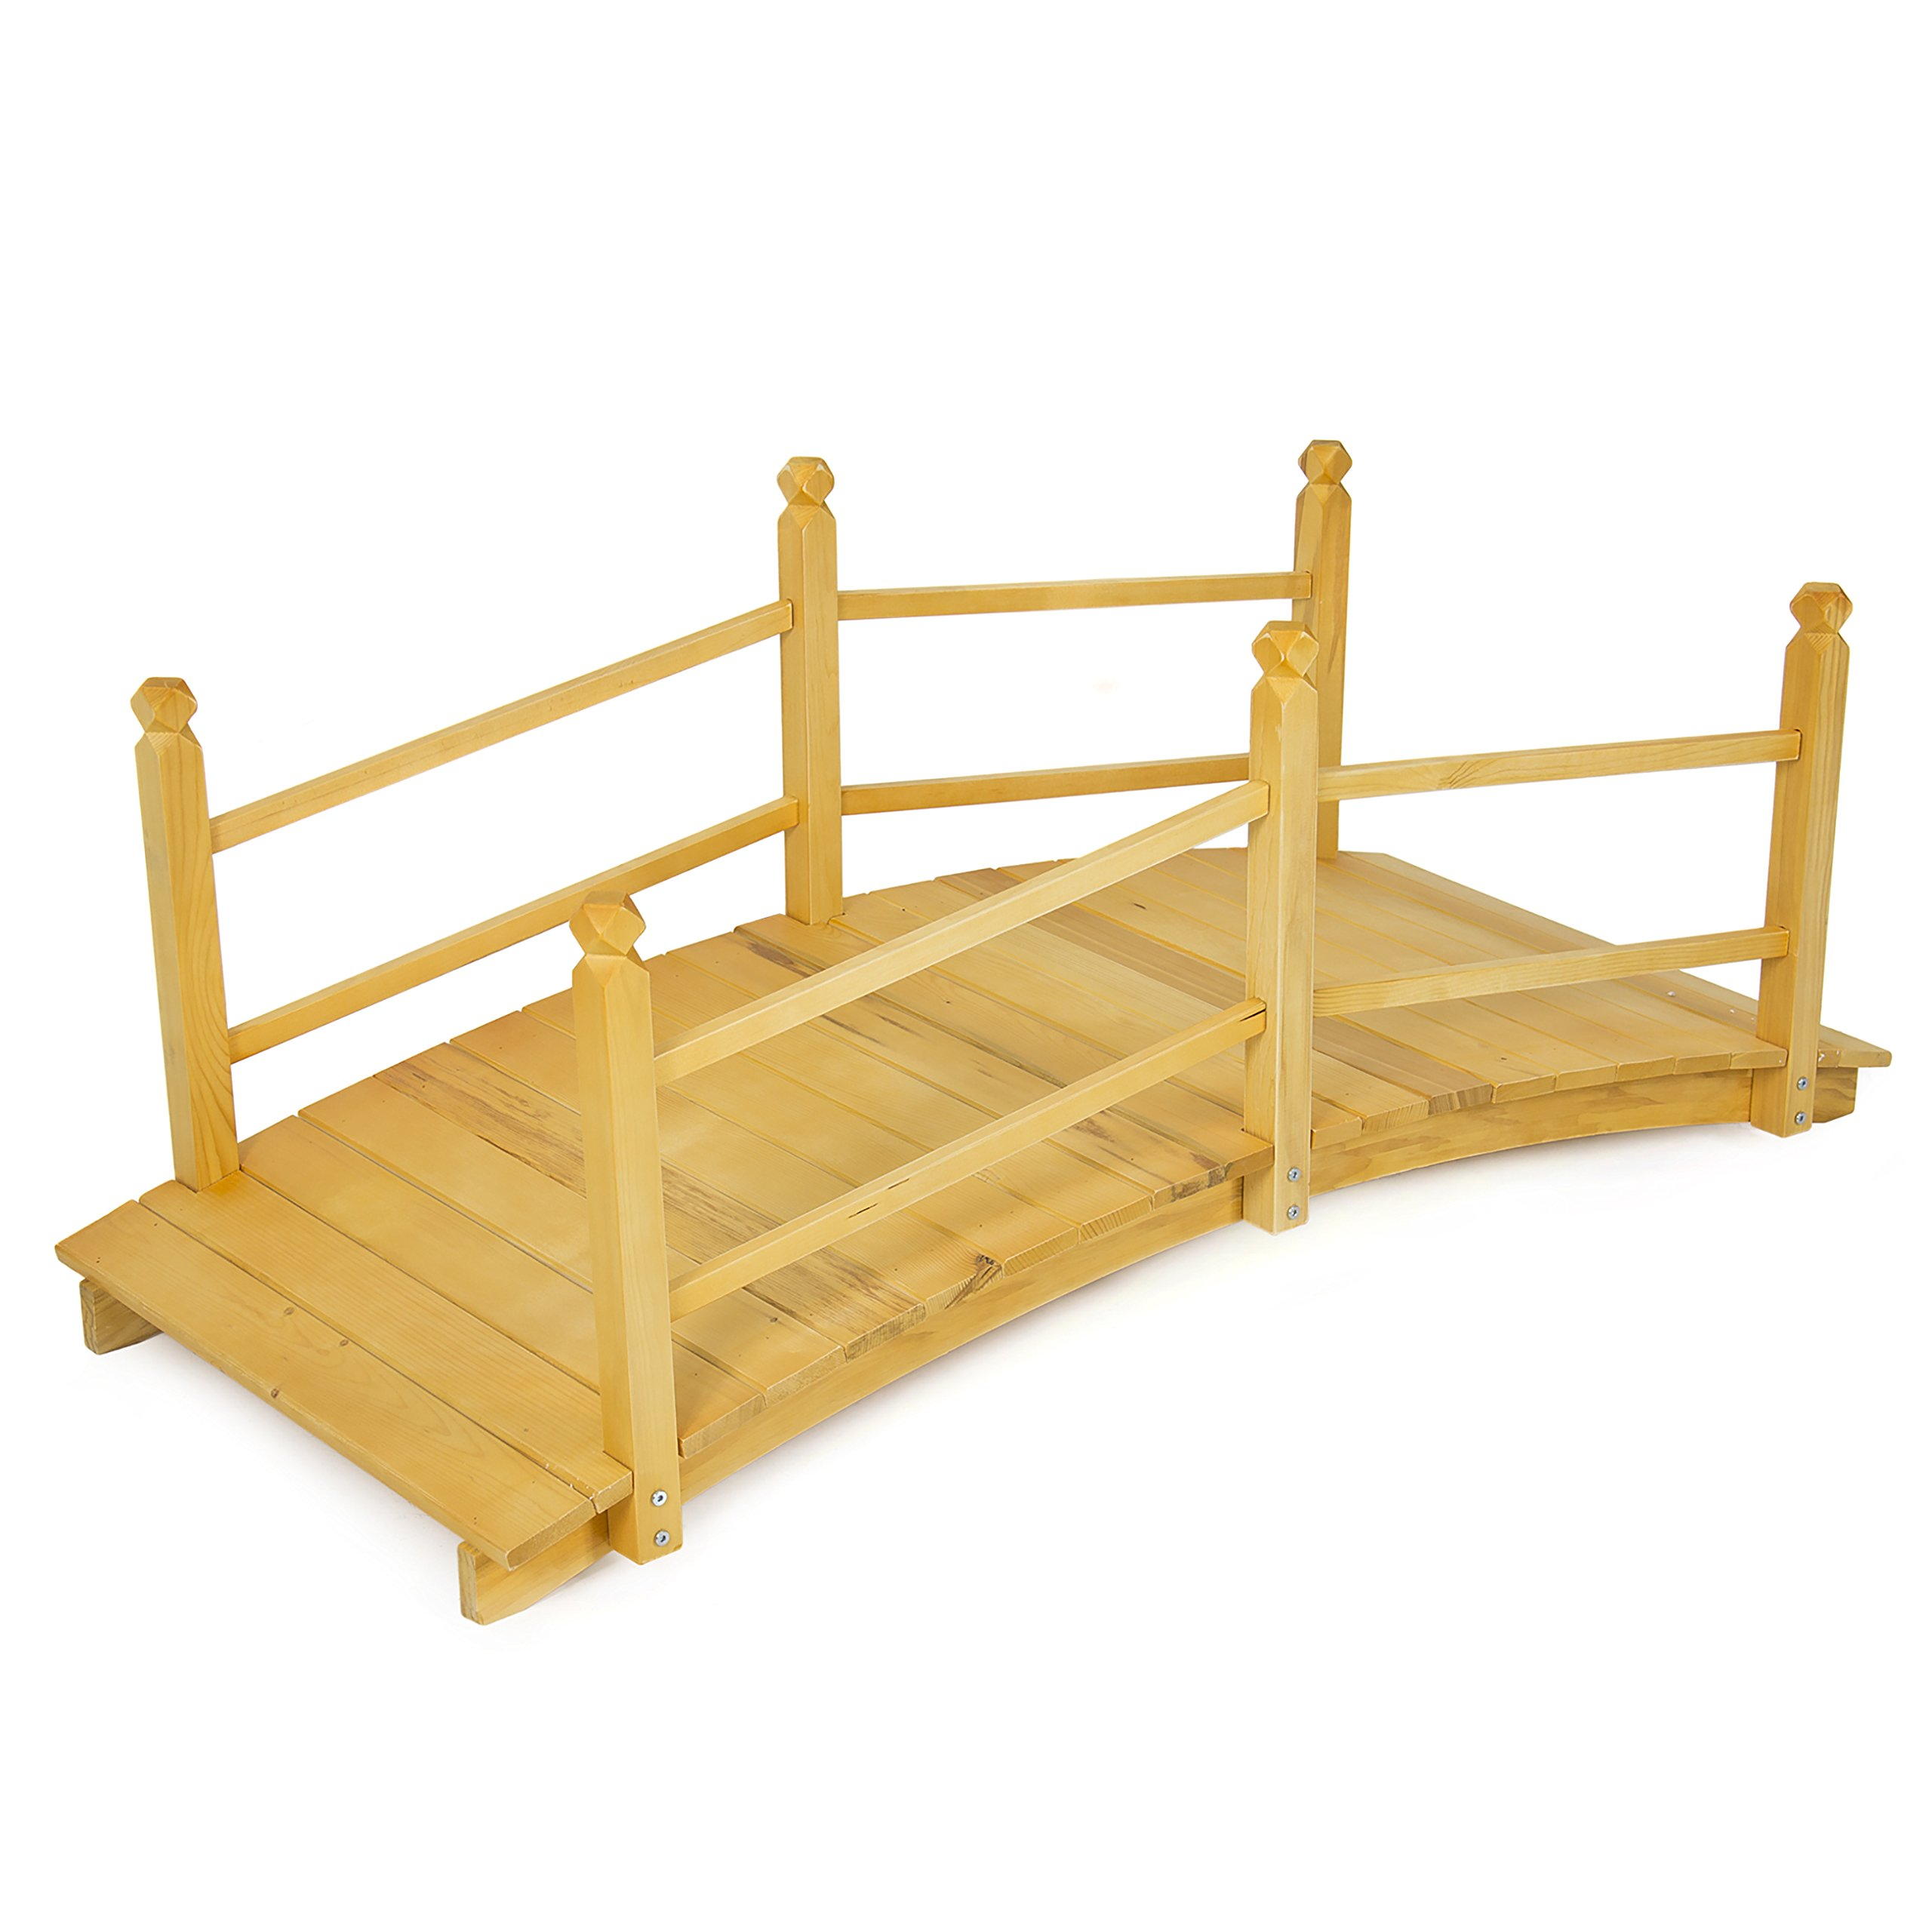 Best Choice Products Wooden Bridge 5'  Natural Finish Decorative Solid Wood Garden Pond Bridge New